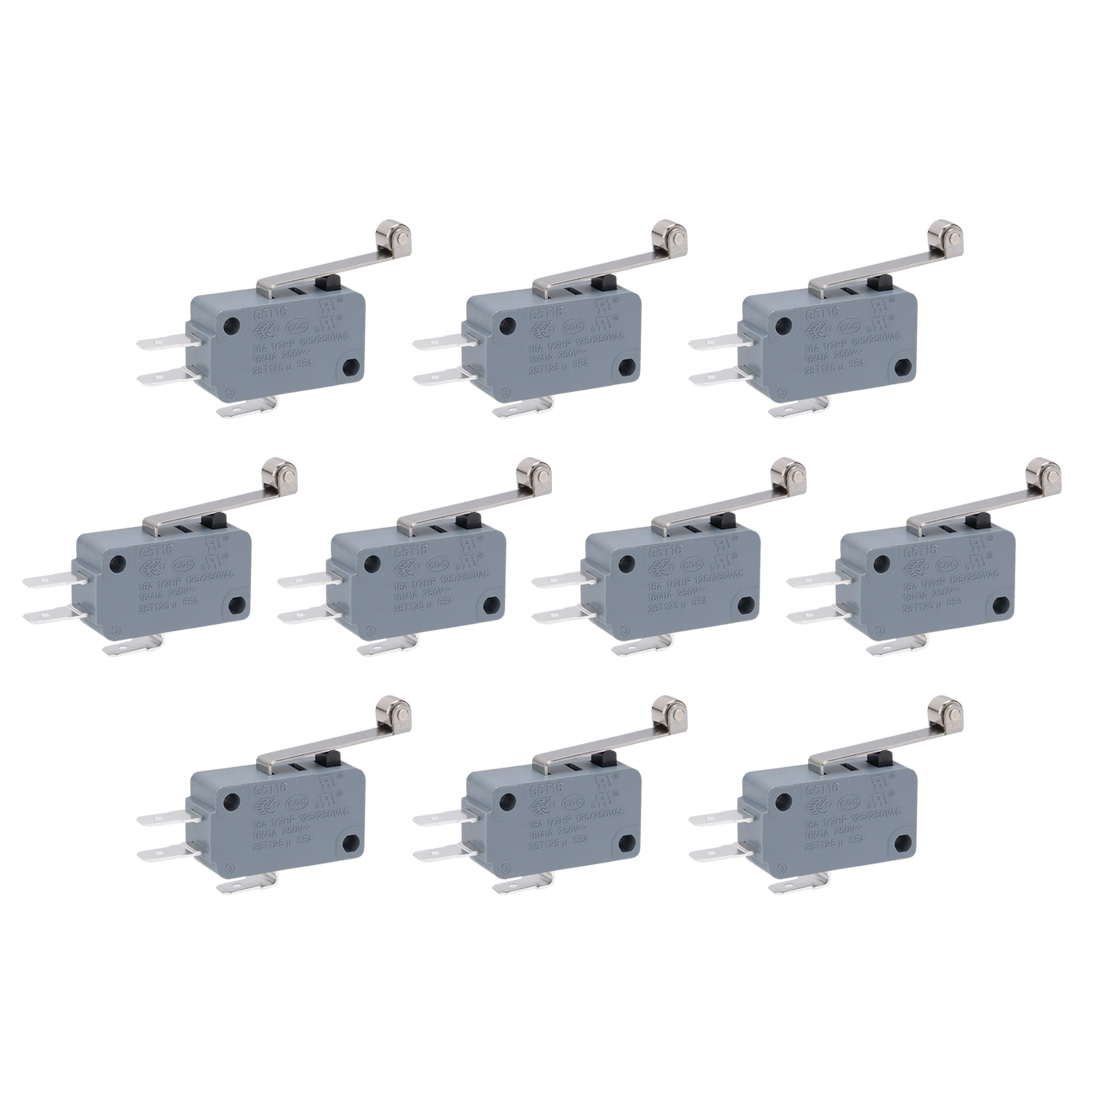 10 Pcs G5T16-E1Z200A06 Roller Lever Arm SPDT NO/NC Momentary Micro Switches